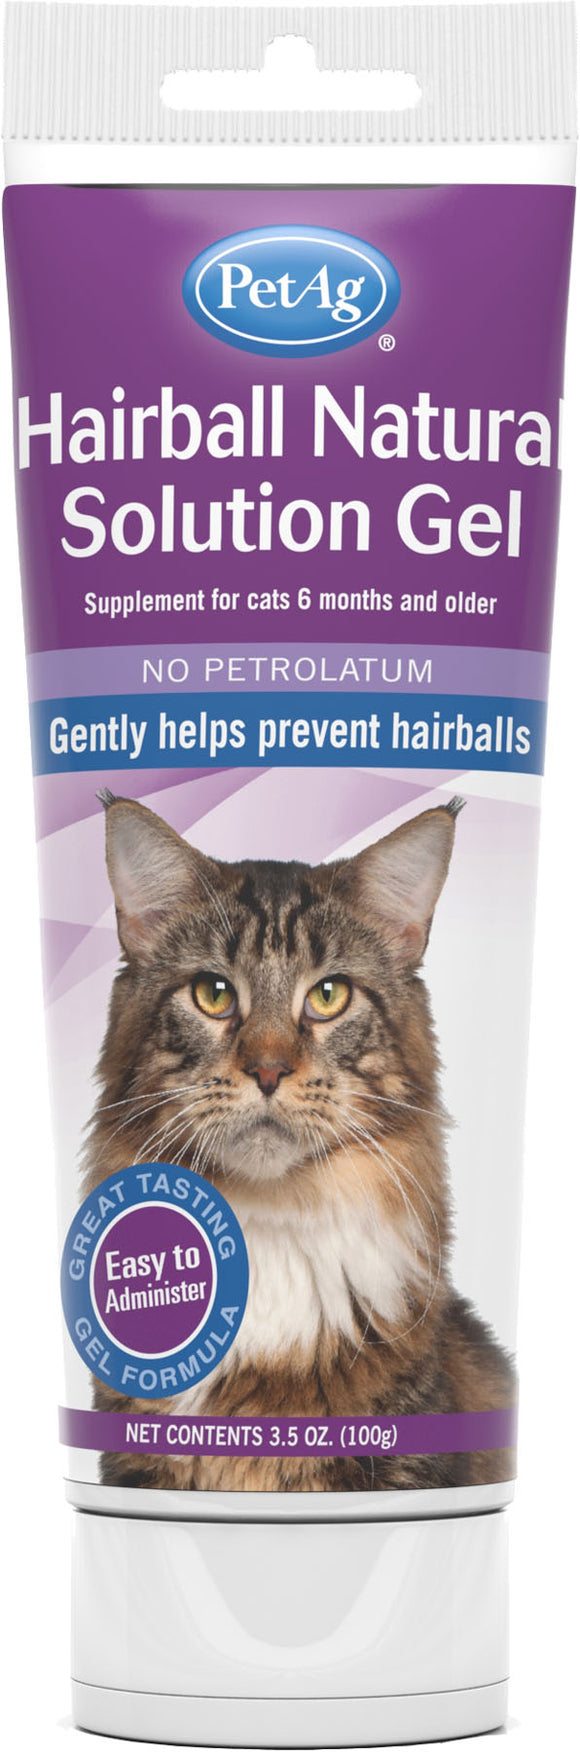 Pet Ag Inc - Hairball Natural Gel For Cats